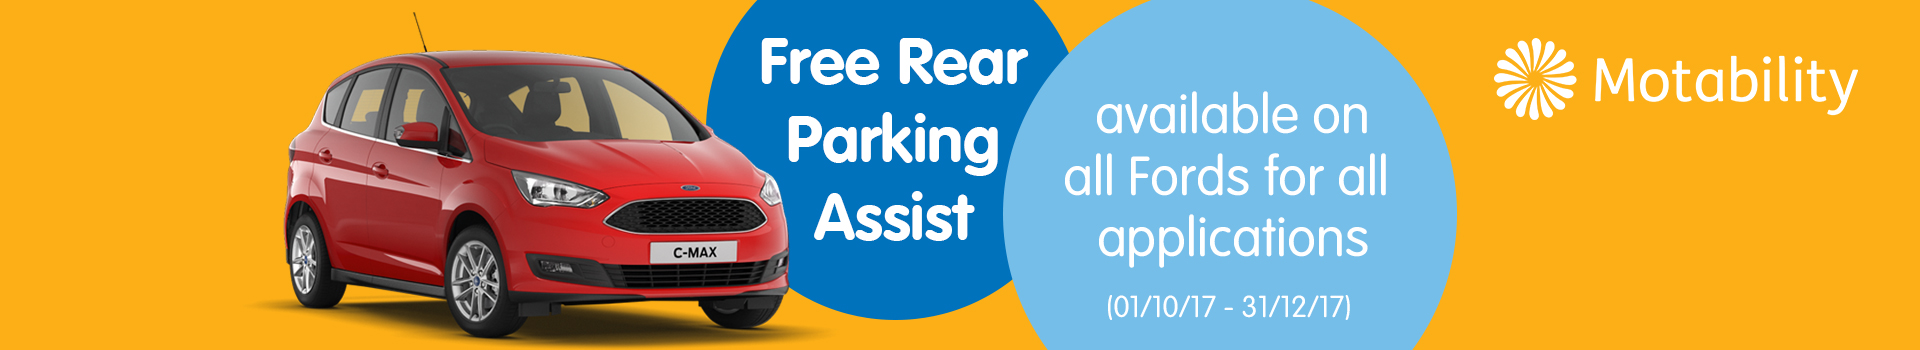 Ford Motability special offer